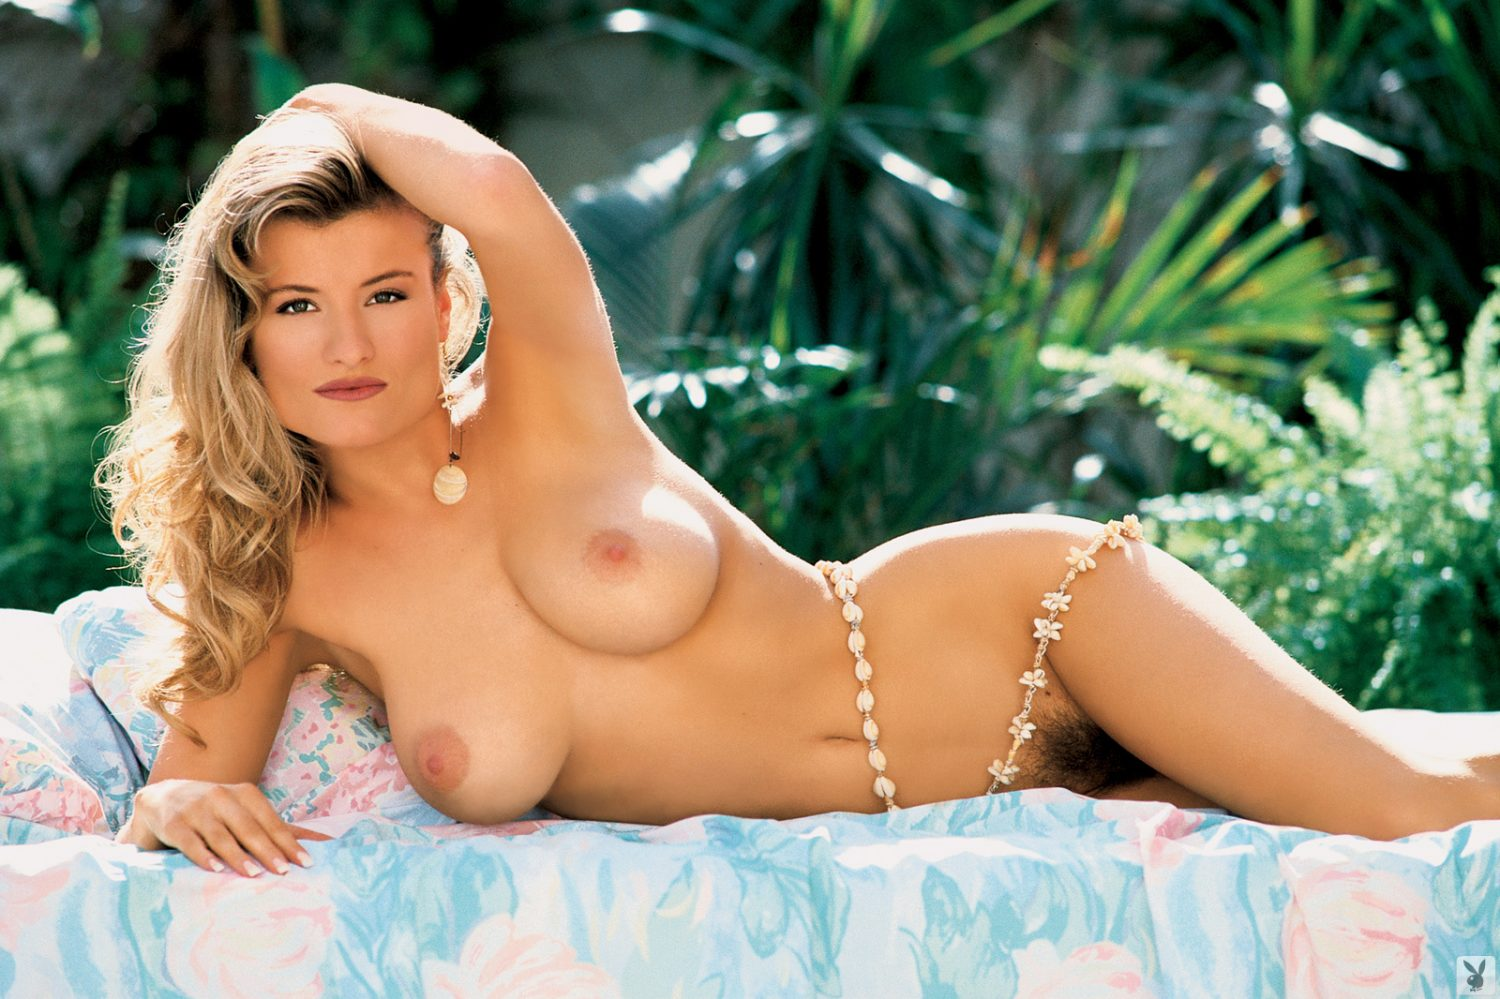 Kerri Kendall Beautiful Busty Playboy Playmate